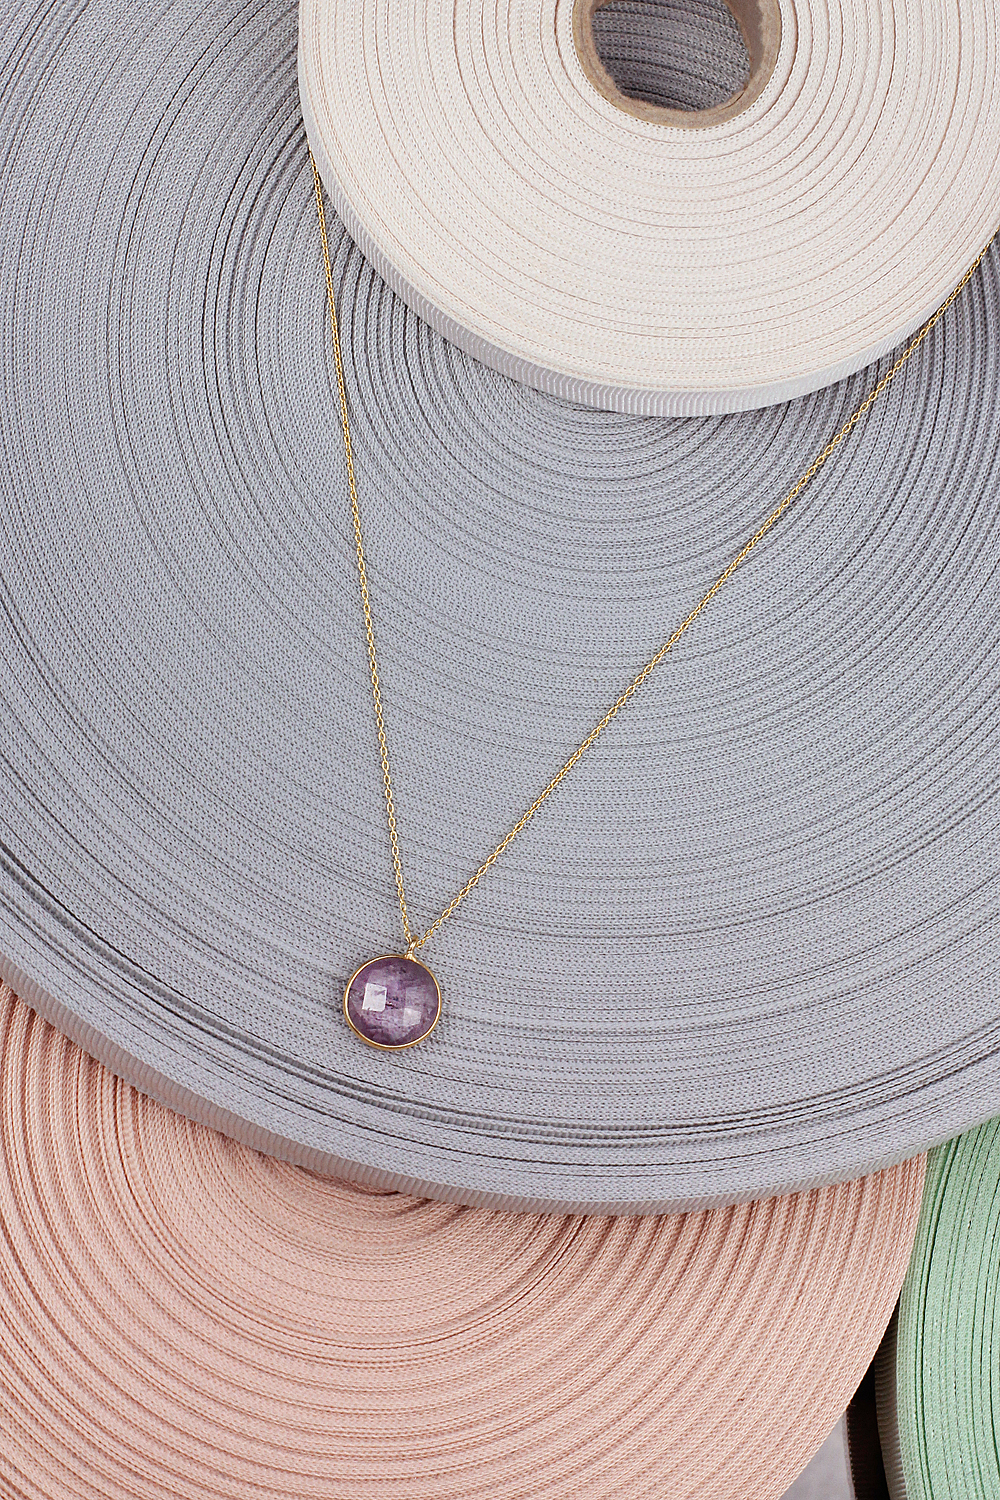 24k gold plated josephine jn09m18 necklace minimal amethyst